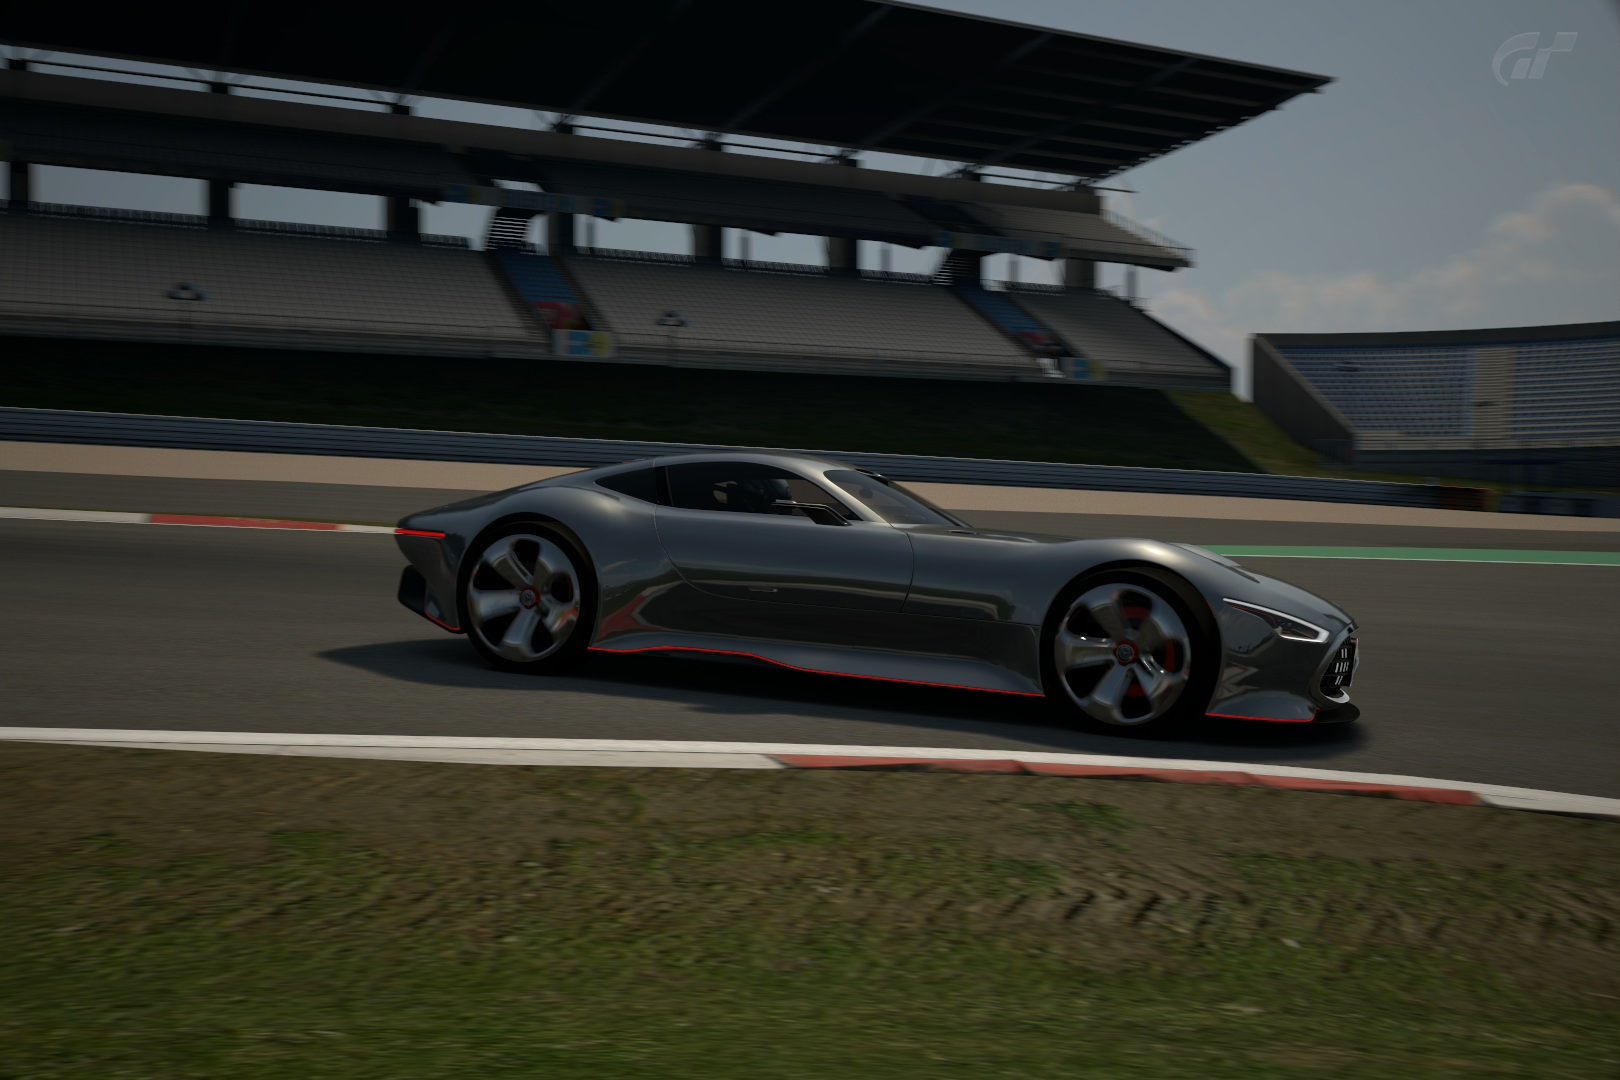 Mercedes benz amg vision gran turismo by lubeify200 on for Mercedes benz amg vision gt